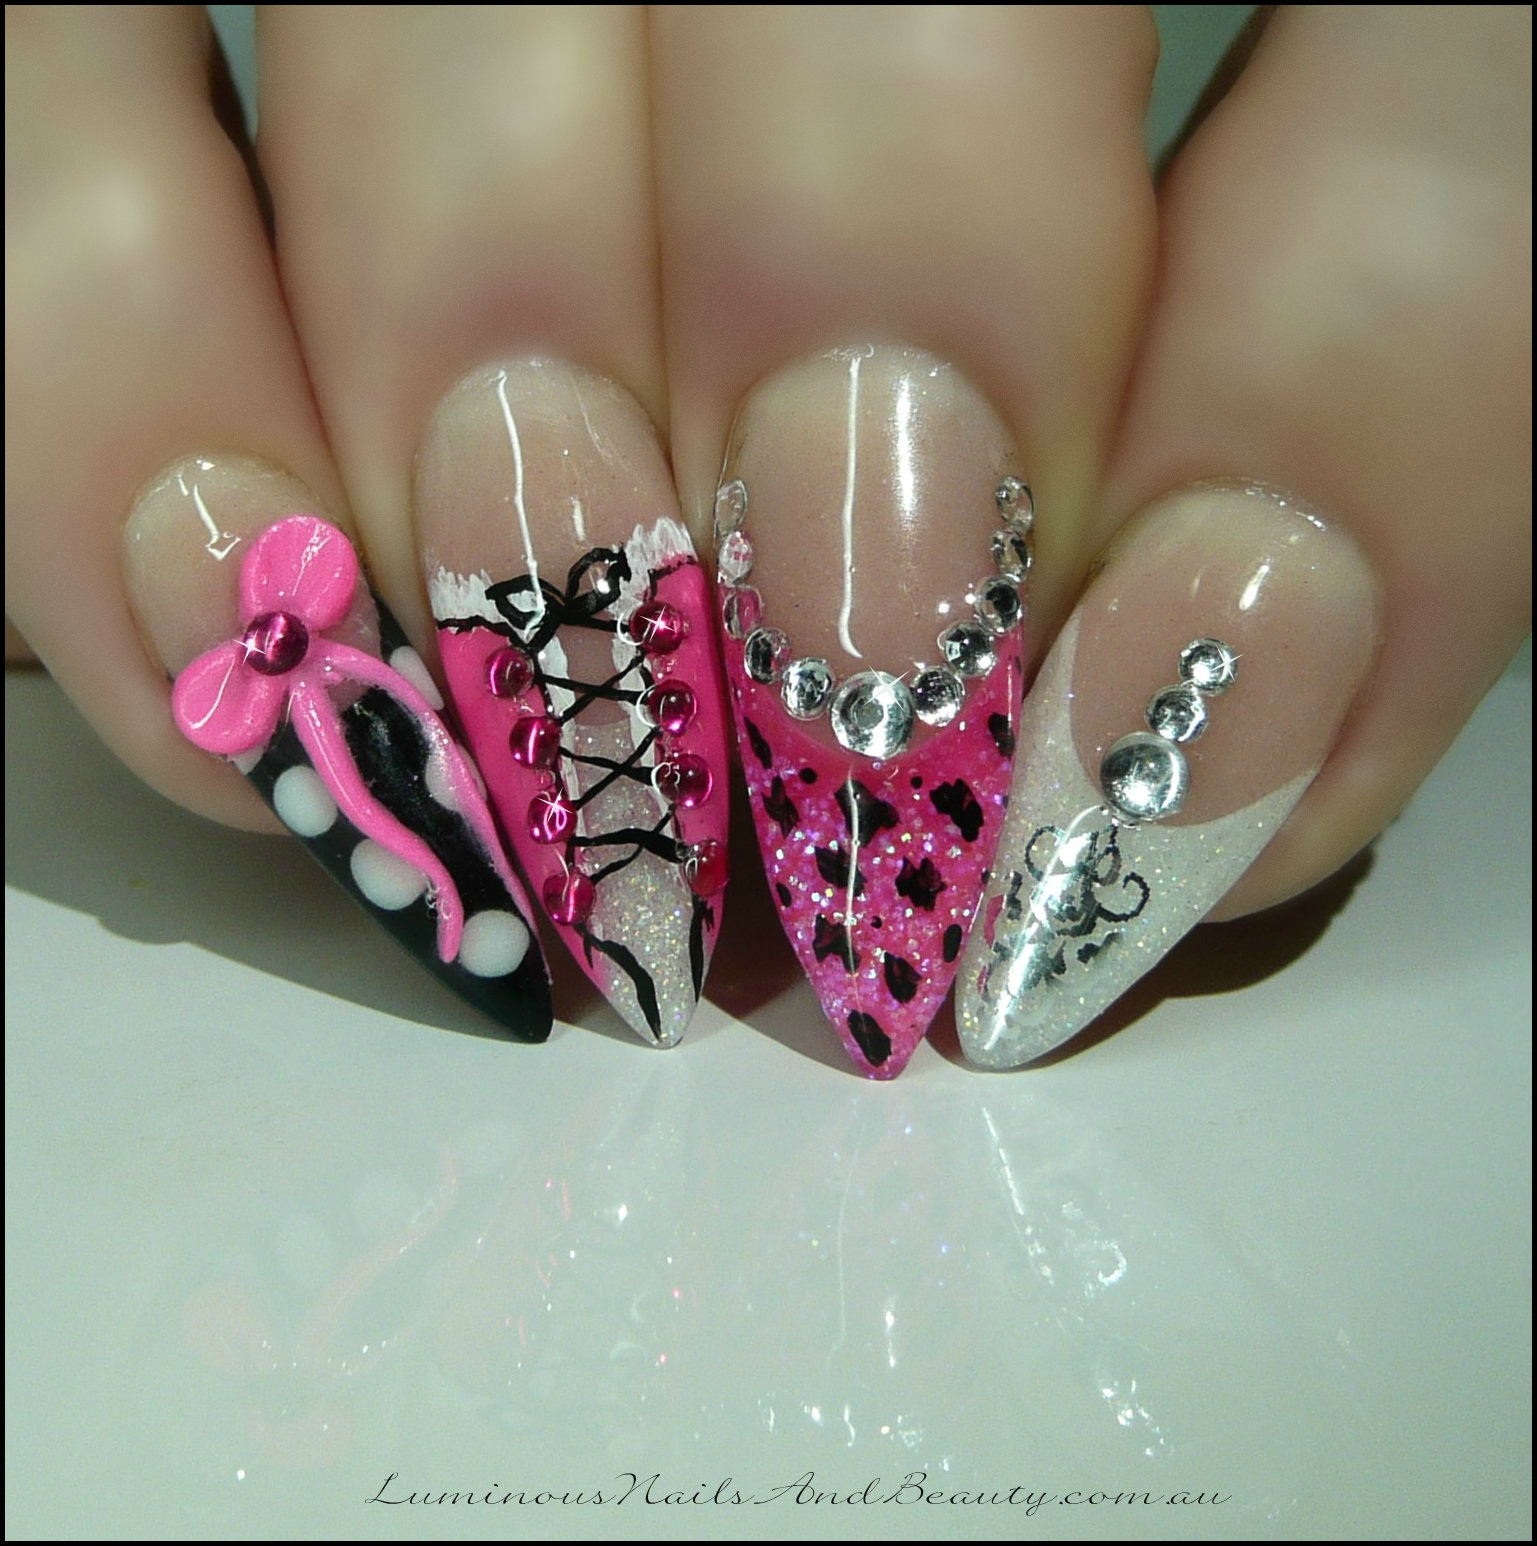 Stiletto Nail Art 2013: Luminous Nails: July 2013